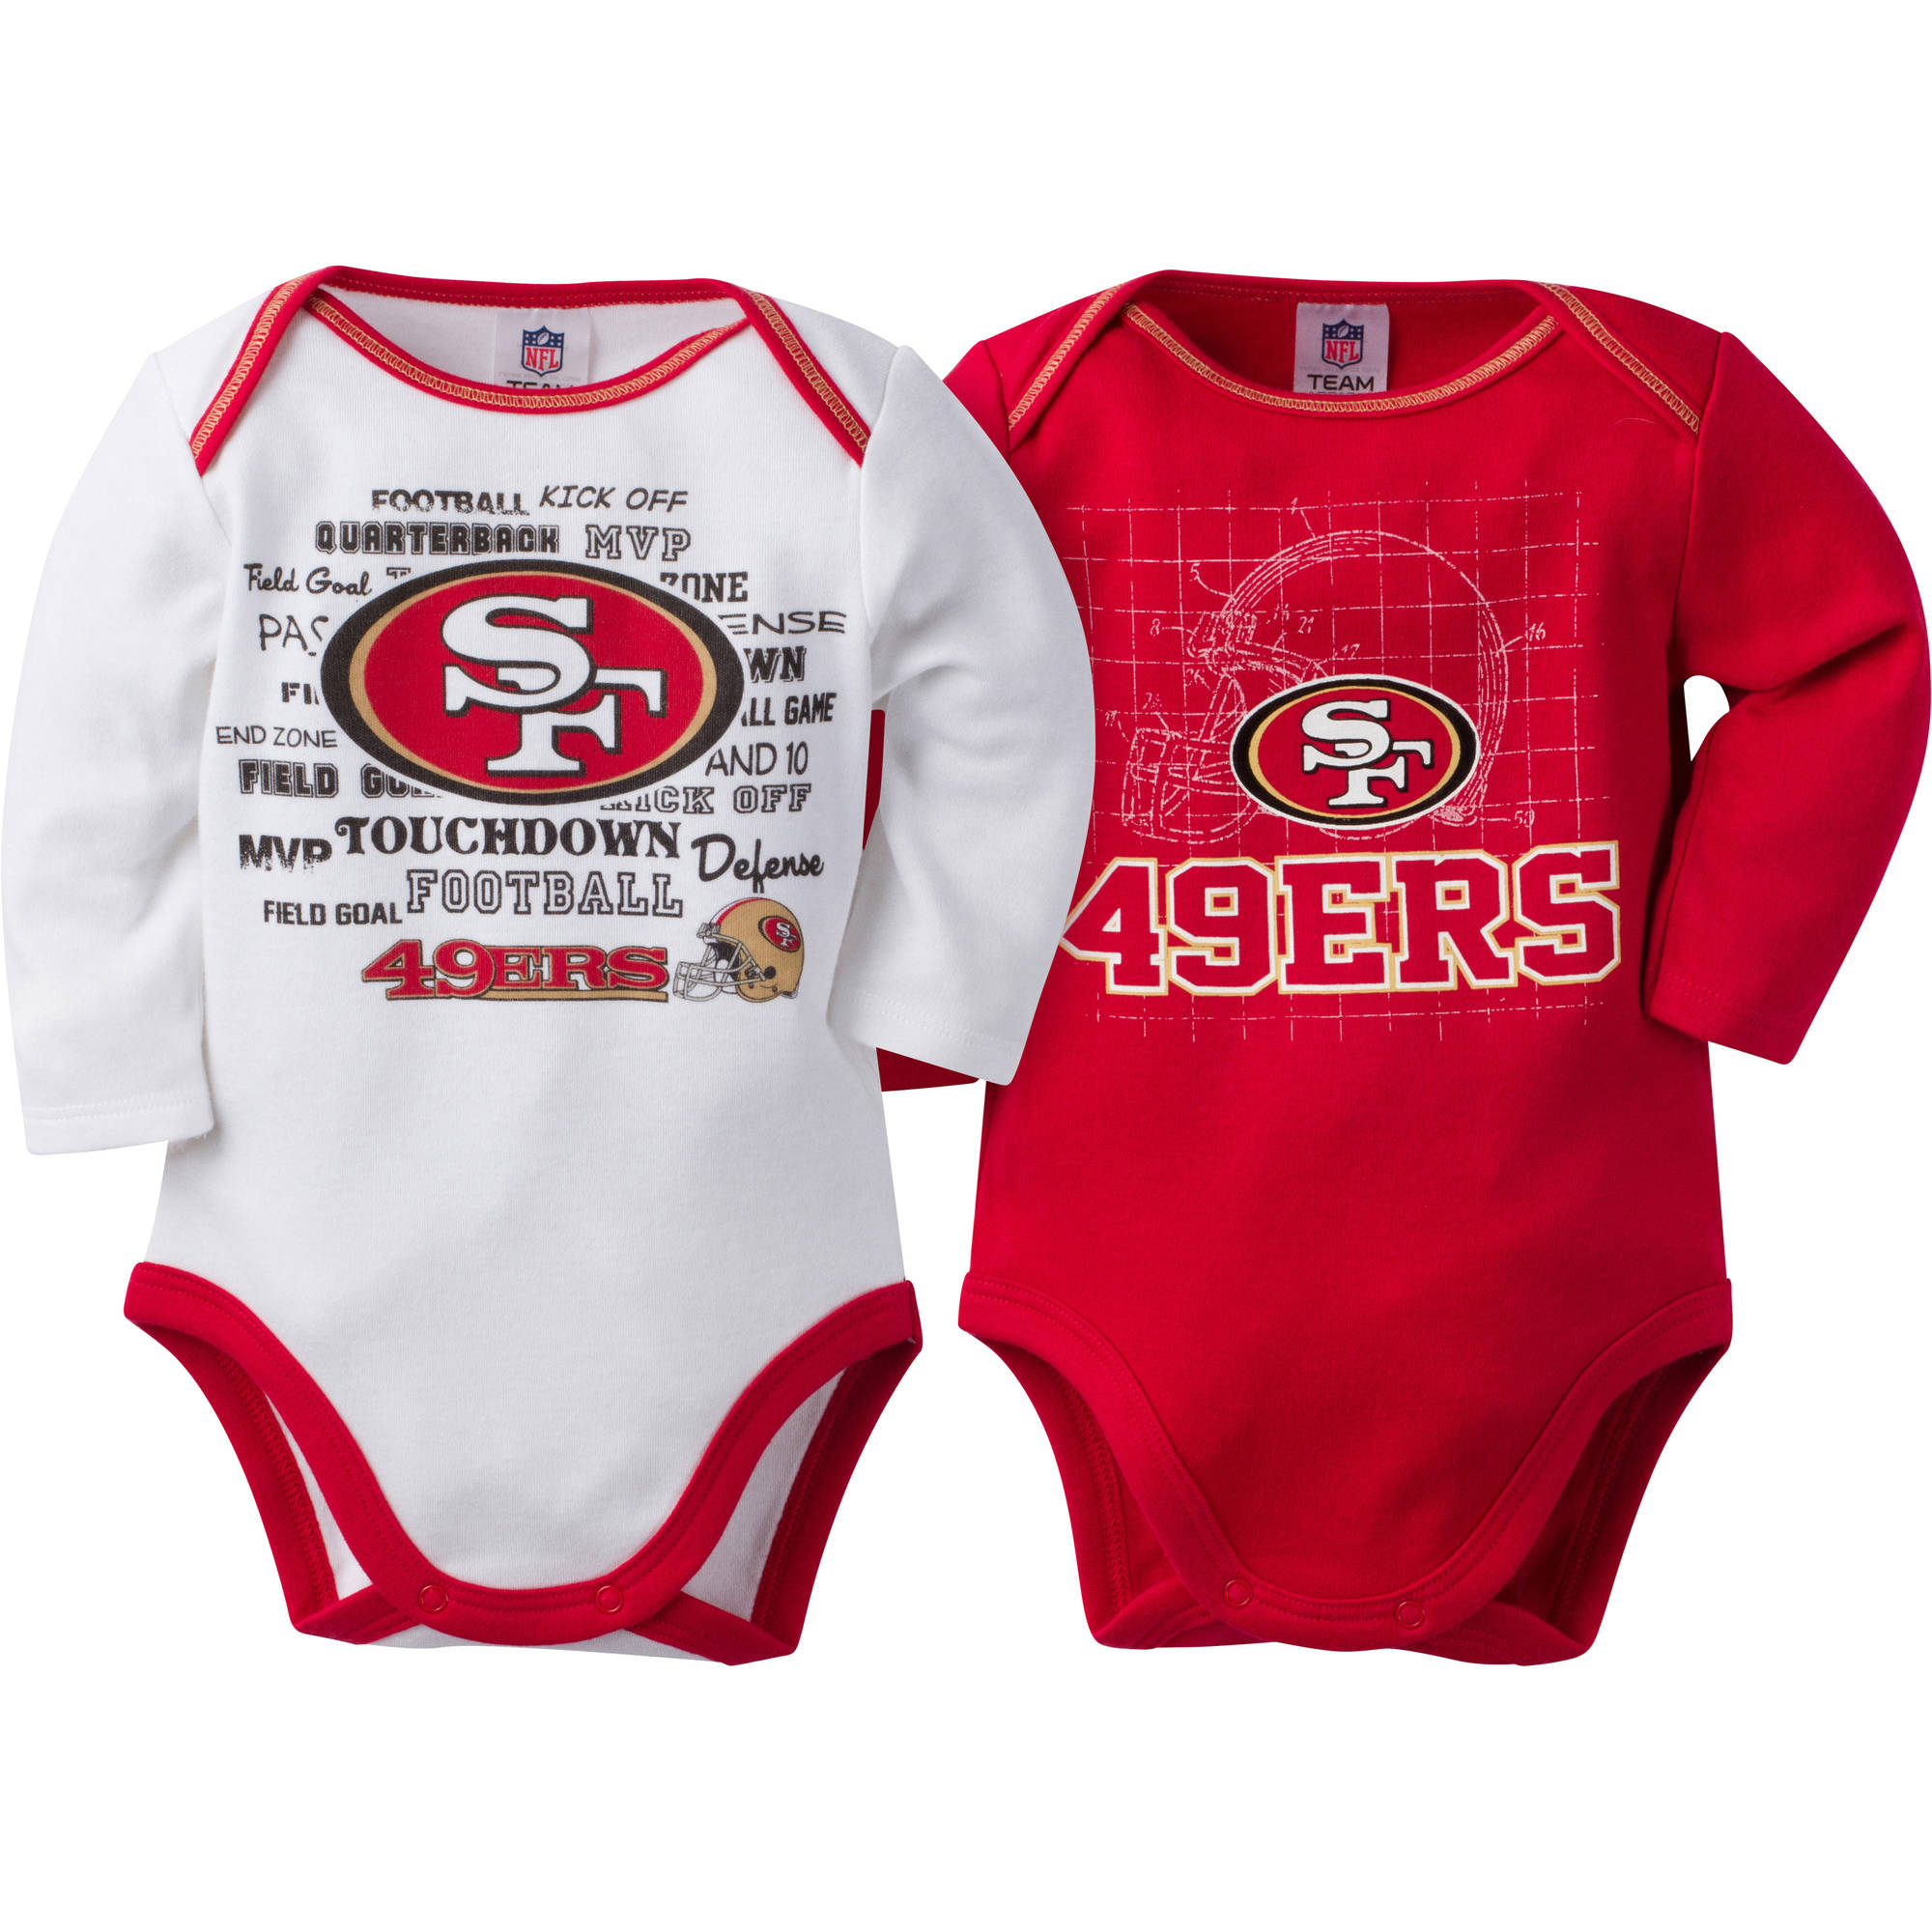 NFL San Francisco 49ers Baby Boys Long Sleeve Bodysuit Set, 2-Pack